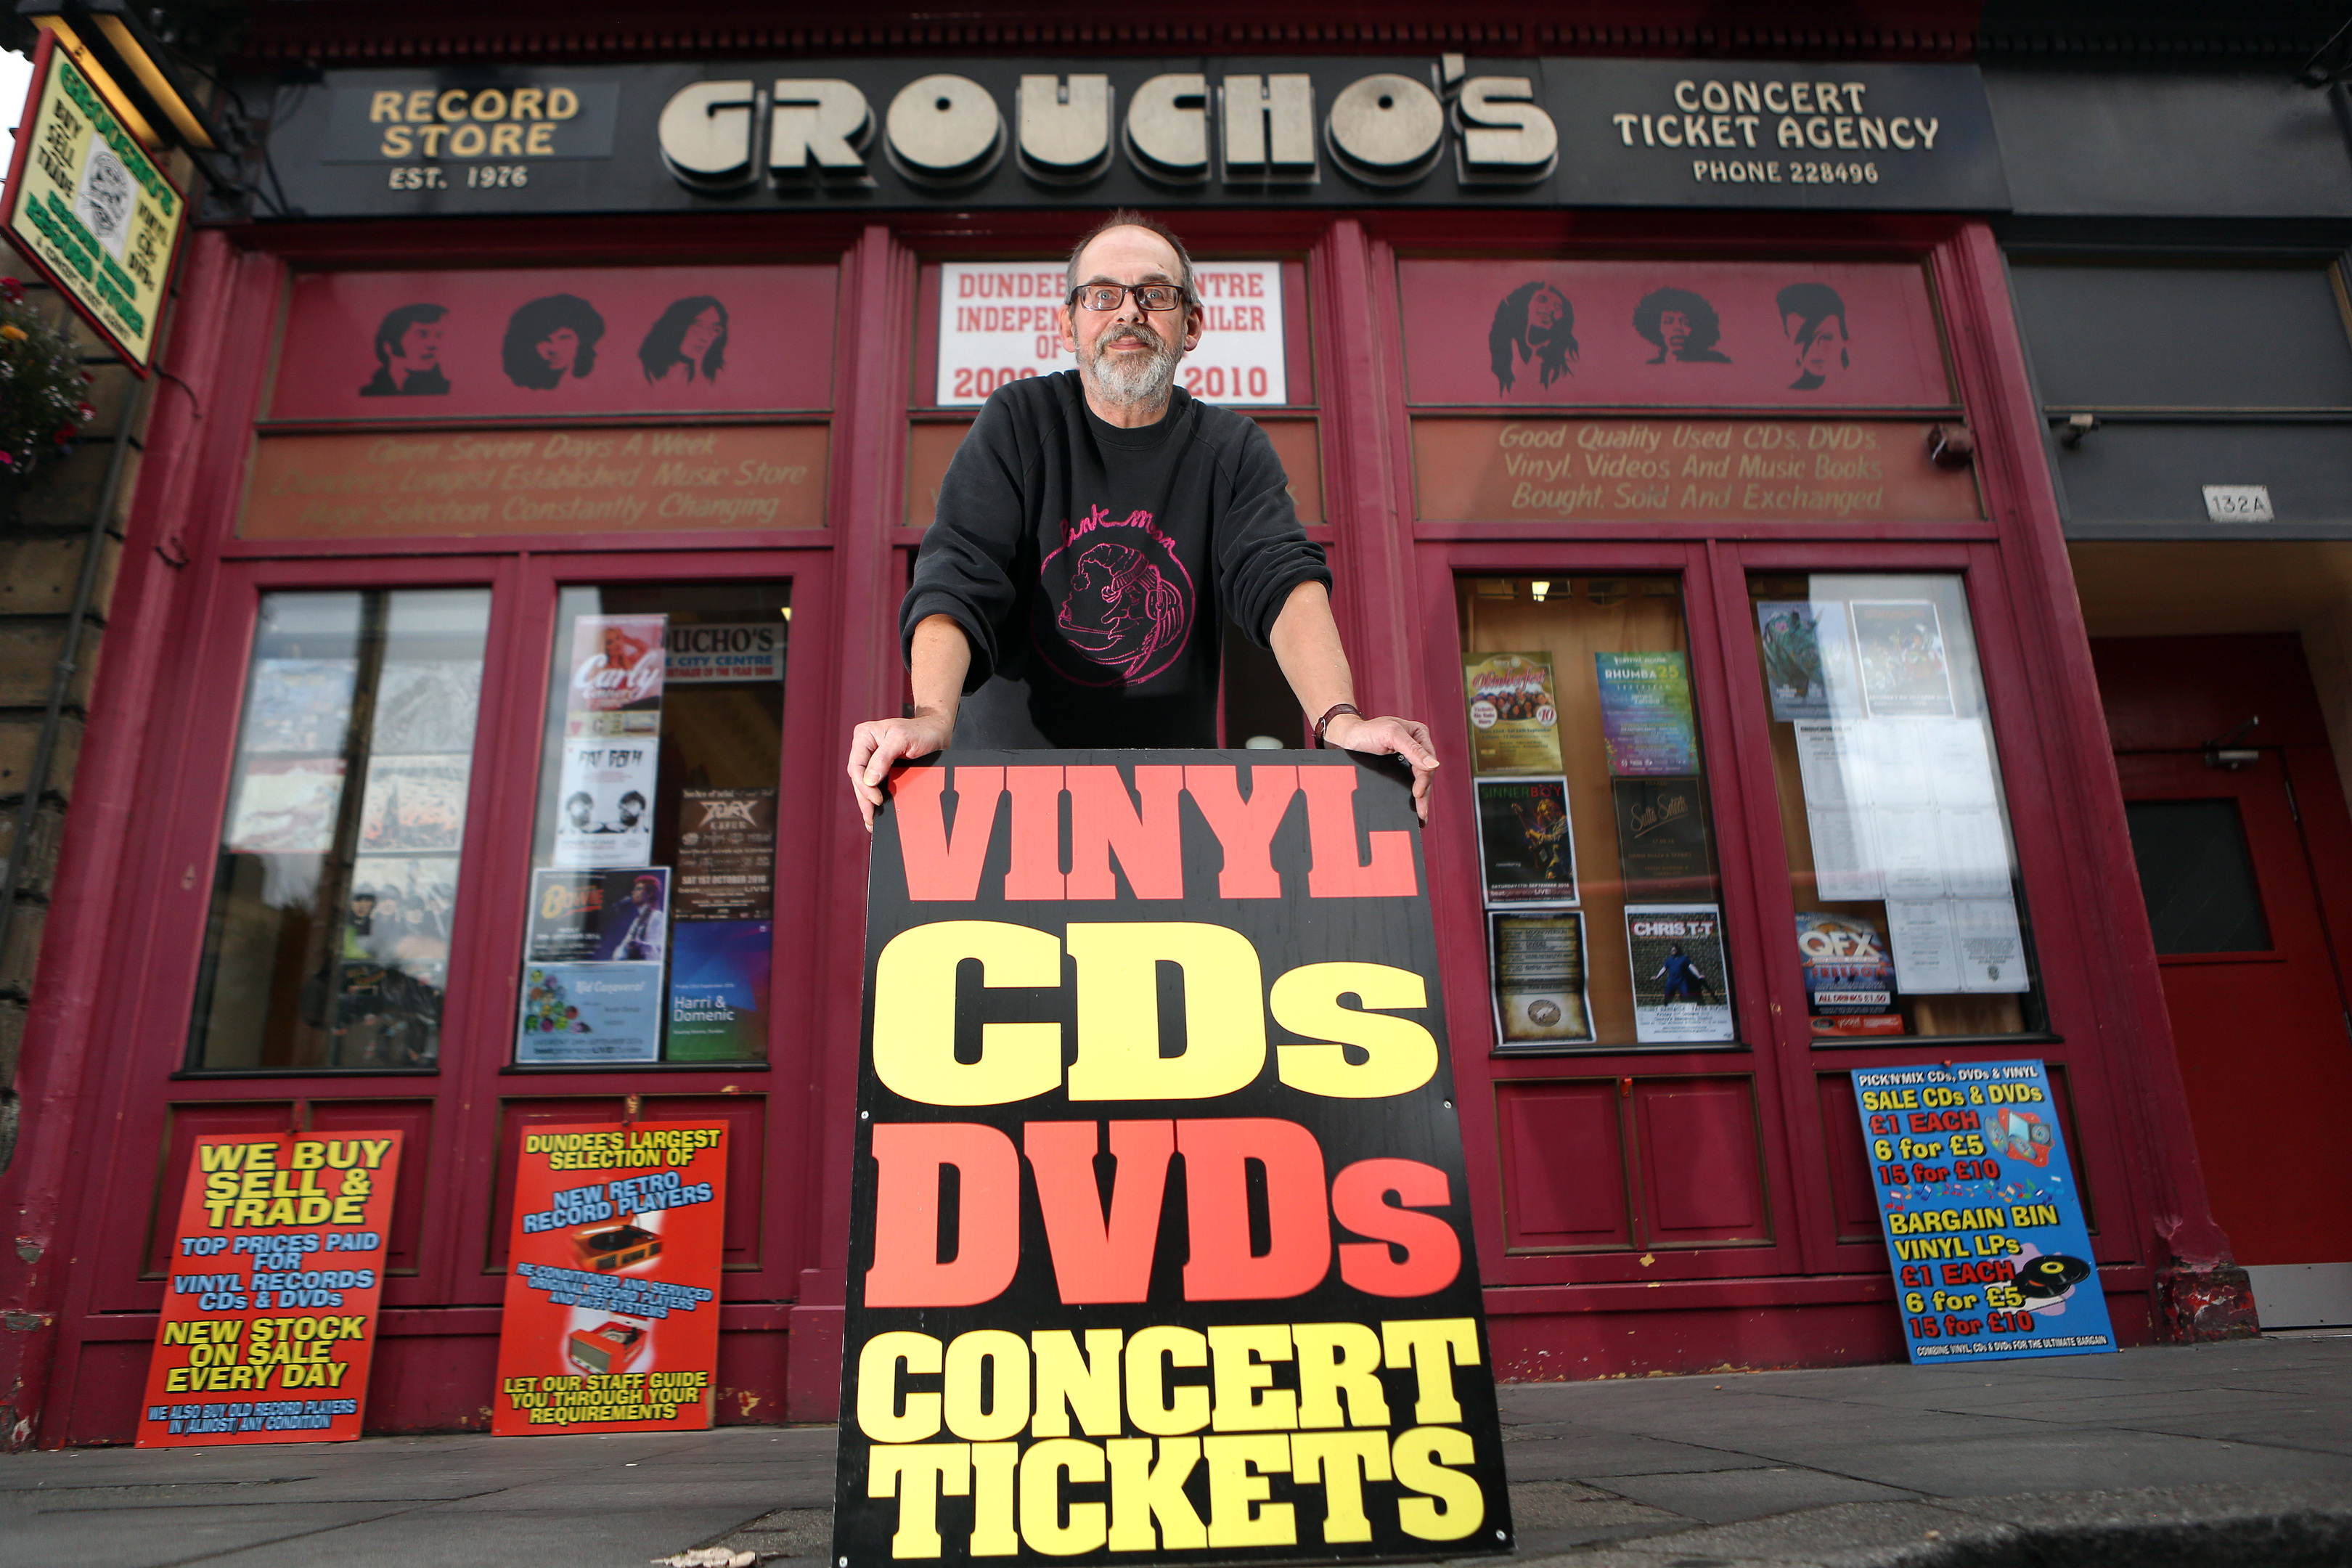 Alastair 'Breeks' Brodie of Groucho's record store in Dundee